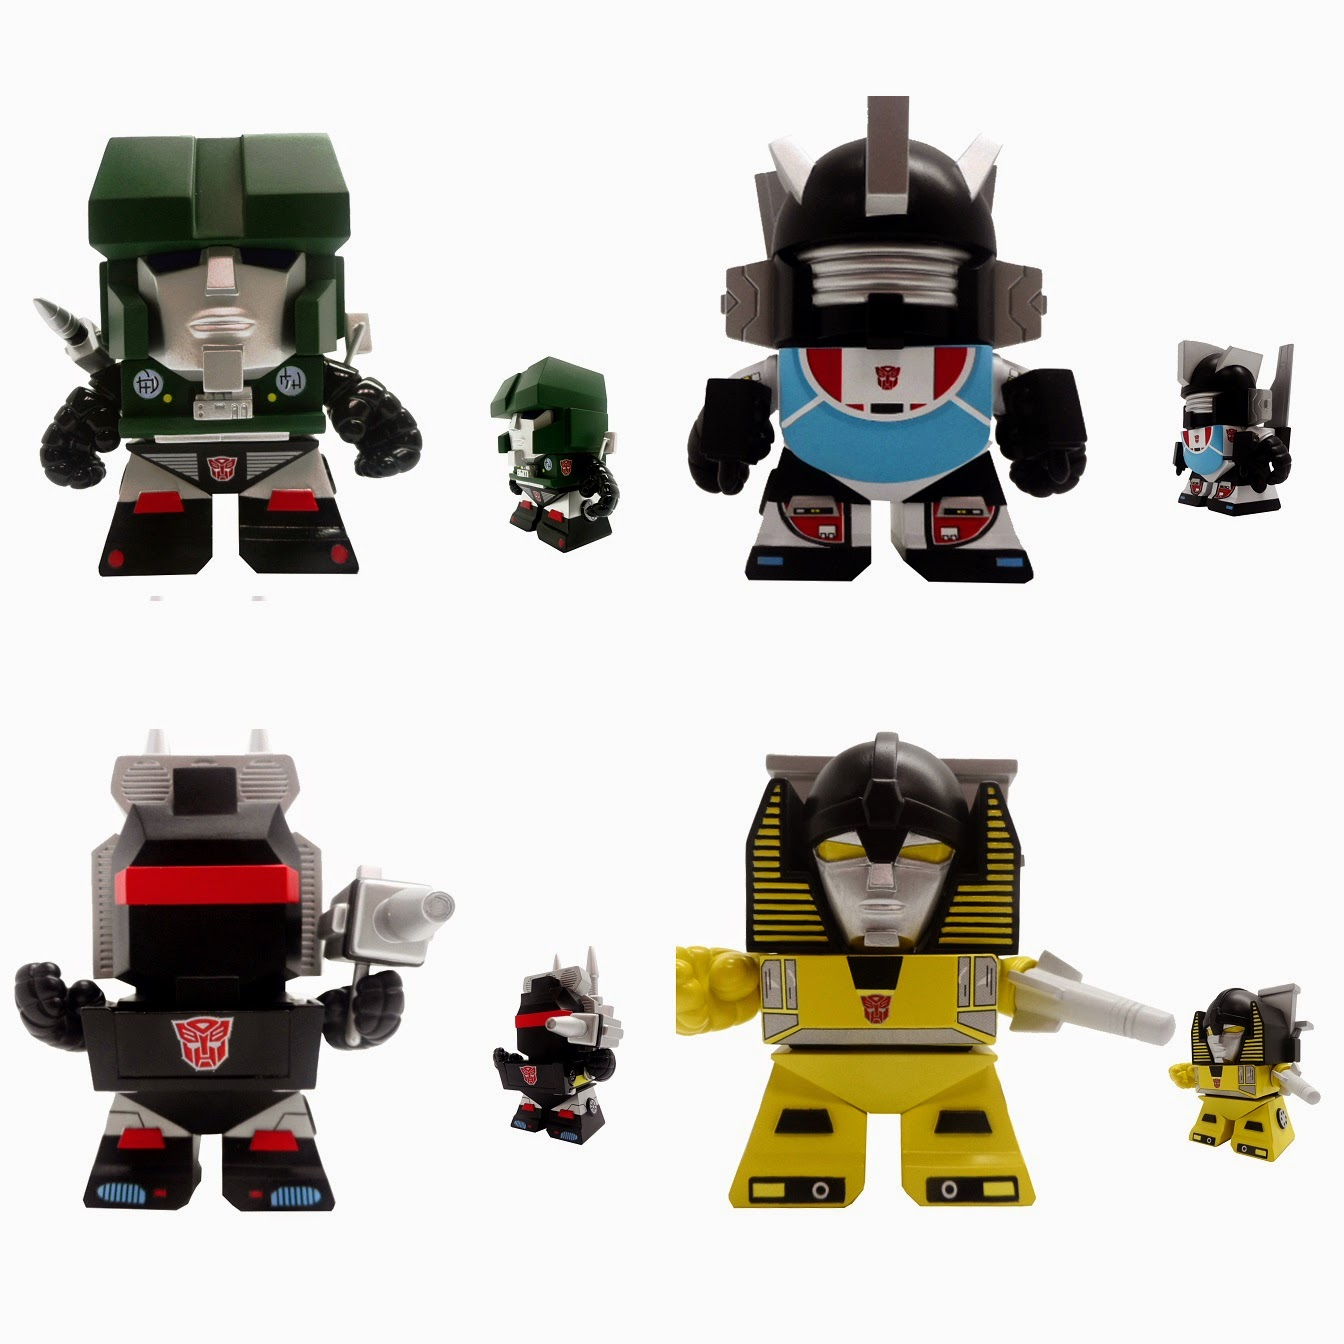 Transformers Mini Figure Series 3 by The Loyal Subjects - Hound, Wheeljack, Trailbreaker & Sunstreaker